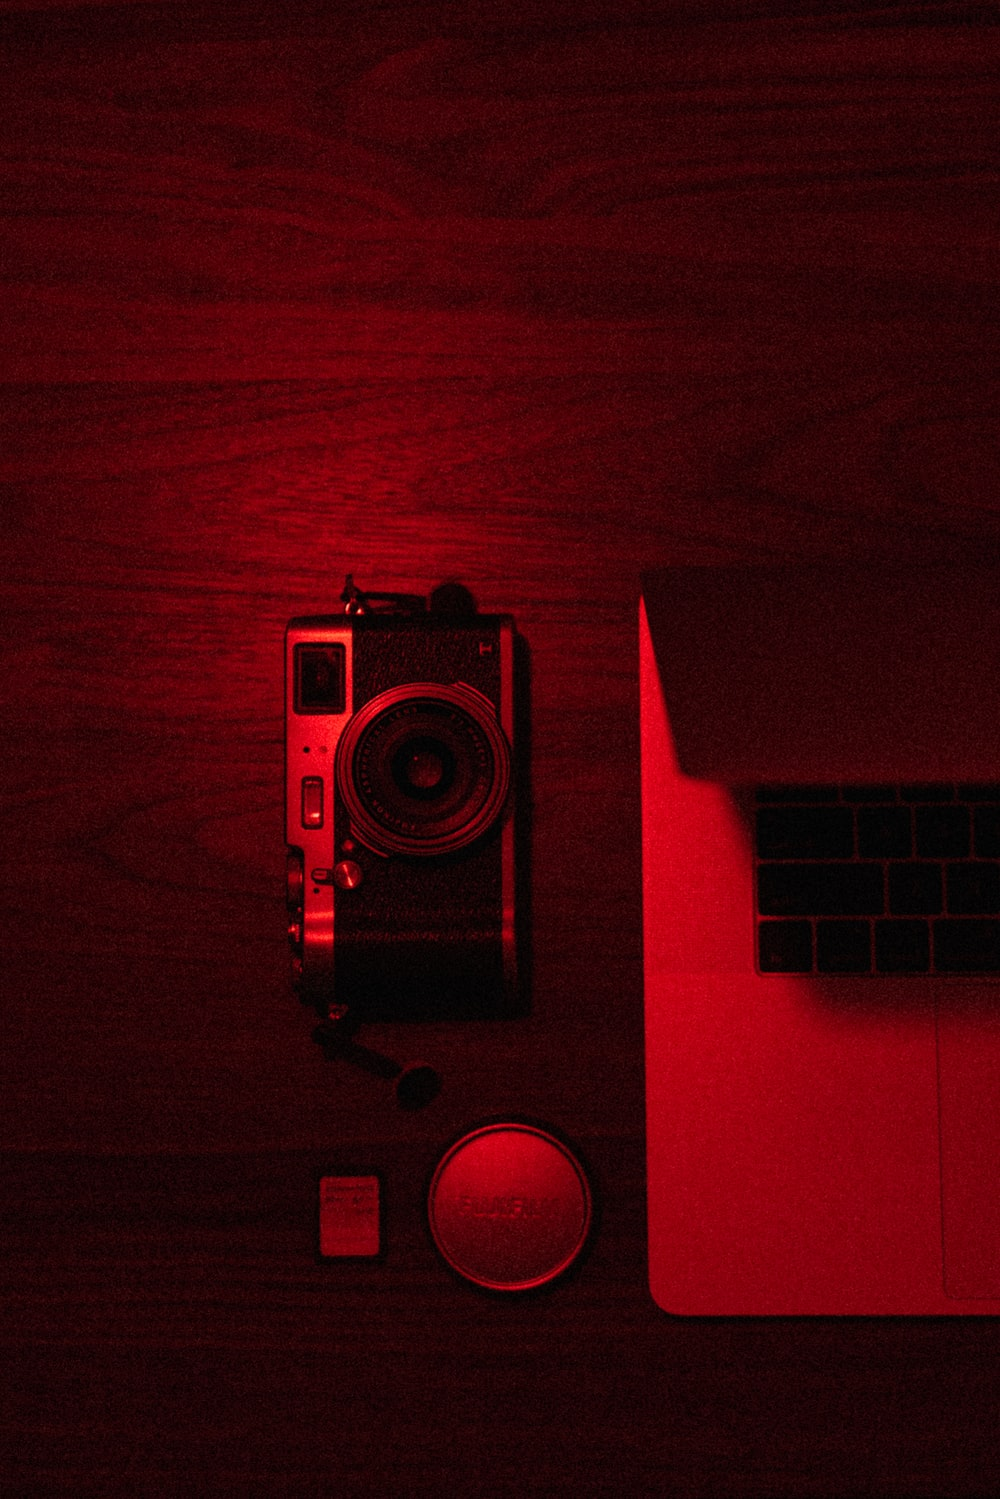 red and black camera on red surface